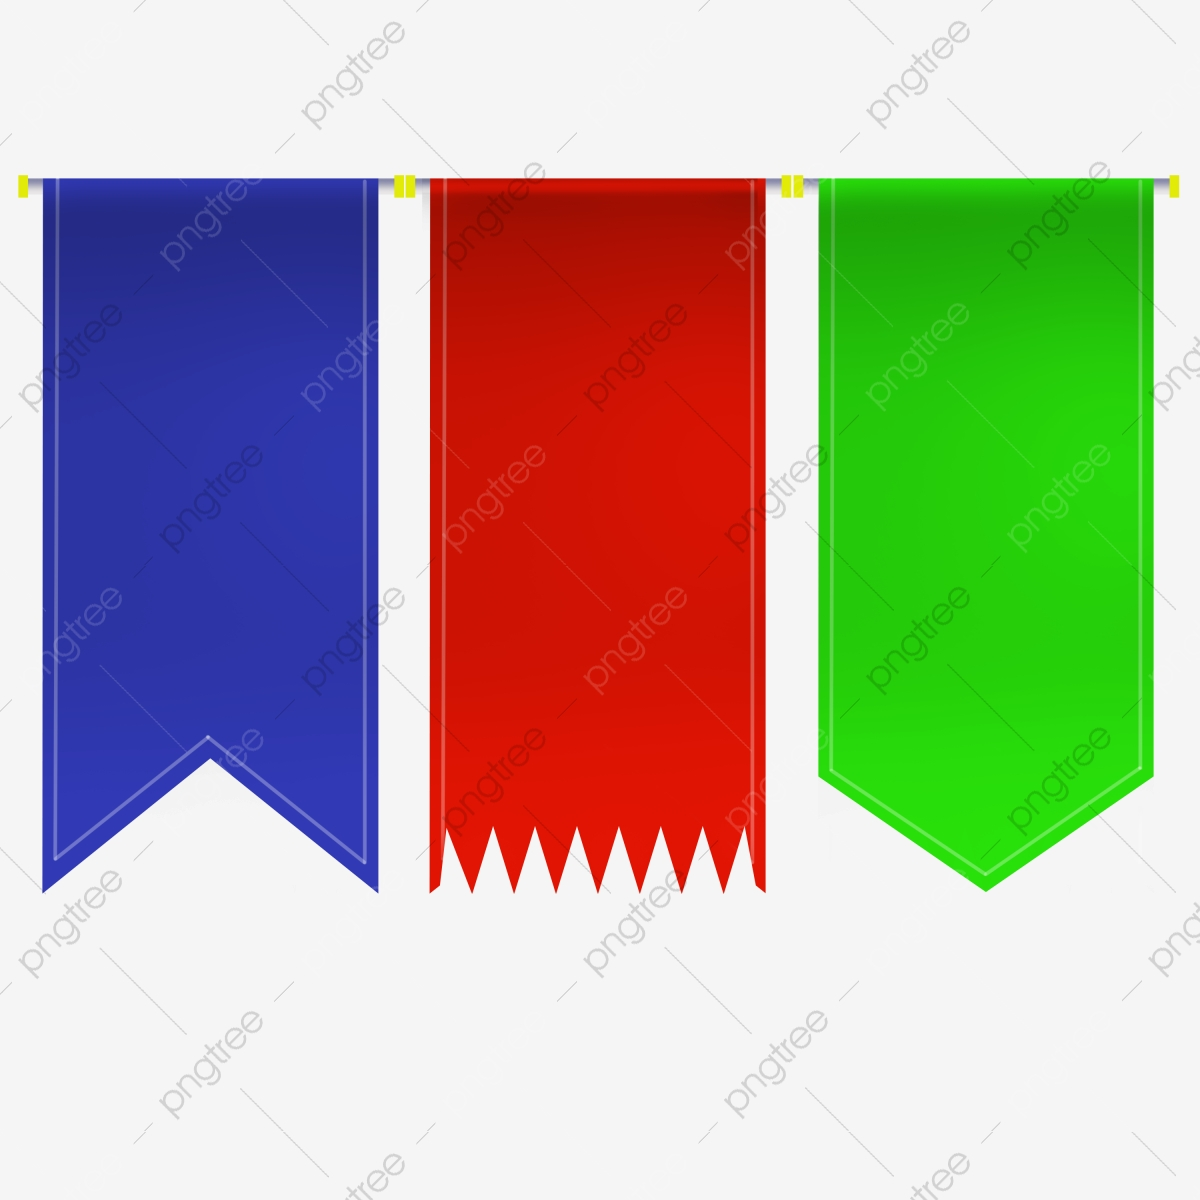 Scroll Banner Png Images Vector And Psd Files Free Download On Pngtree This is how i will post it when i sell this image so people know who created the banner. https pngtree com freepng multicolor hanging vertical scroll banner psd 5376738 html